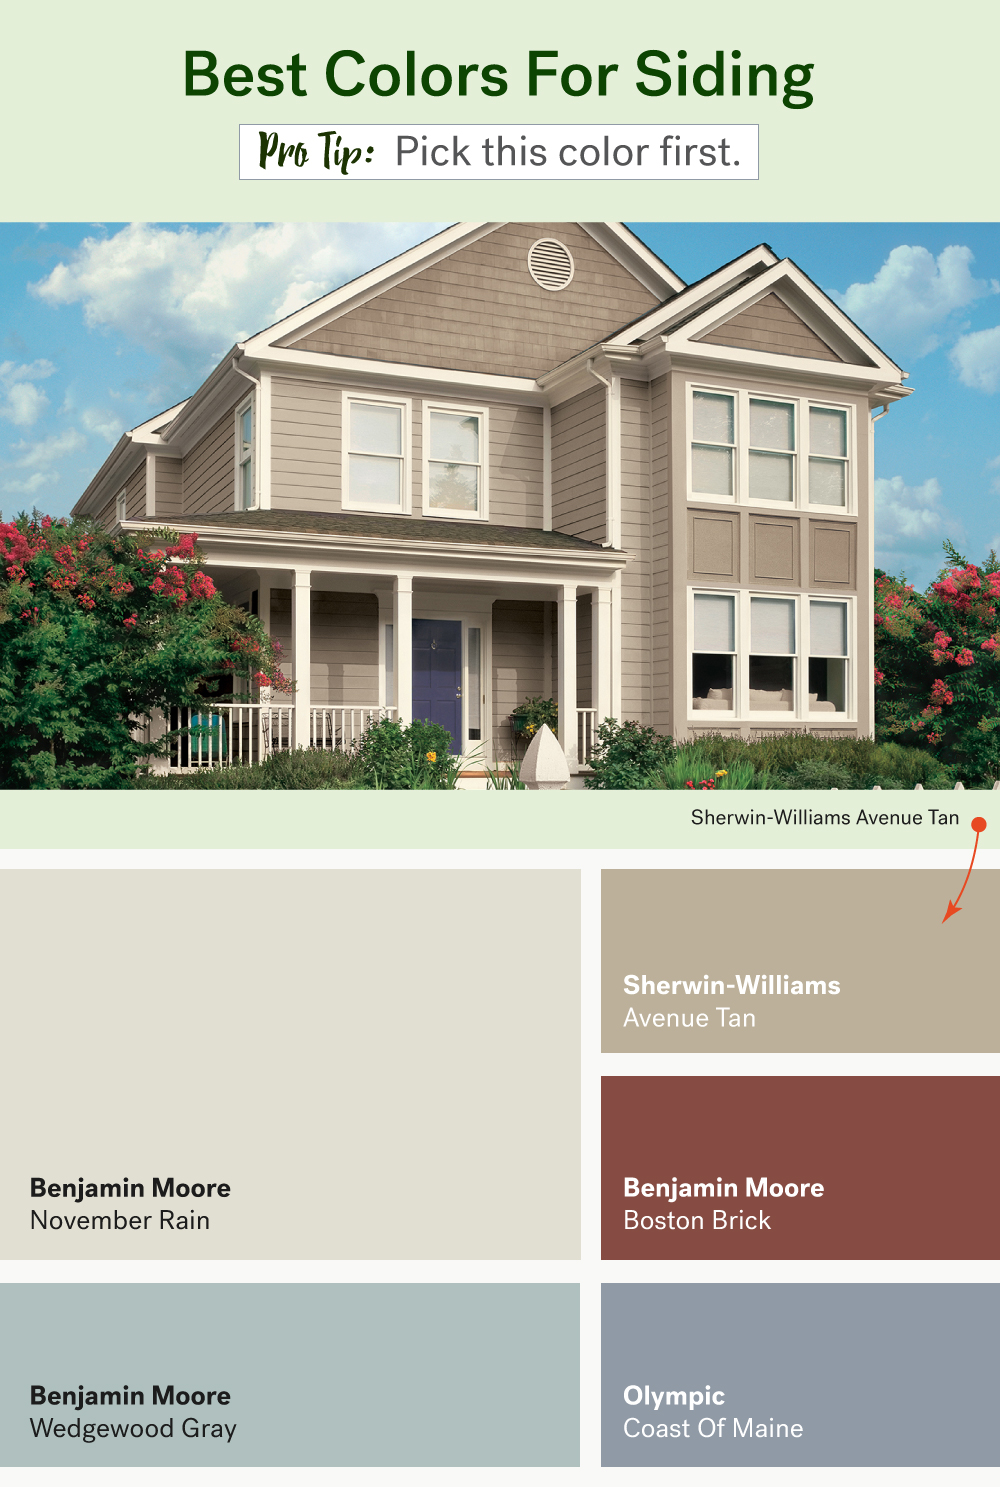 Sherwin williams warm gray paint color 2017 2018 best cars reviews 2017 2018 best cars reviews - Best exterior paint colors sherwin williams concept ...